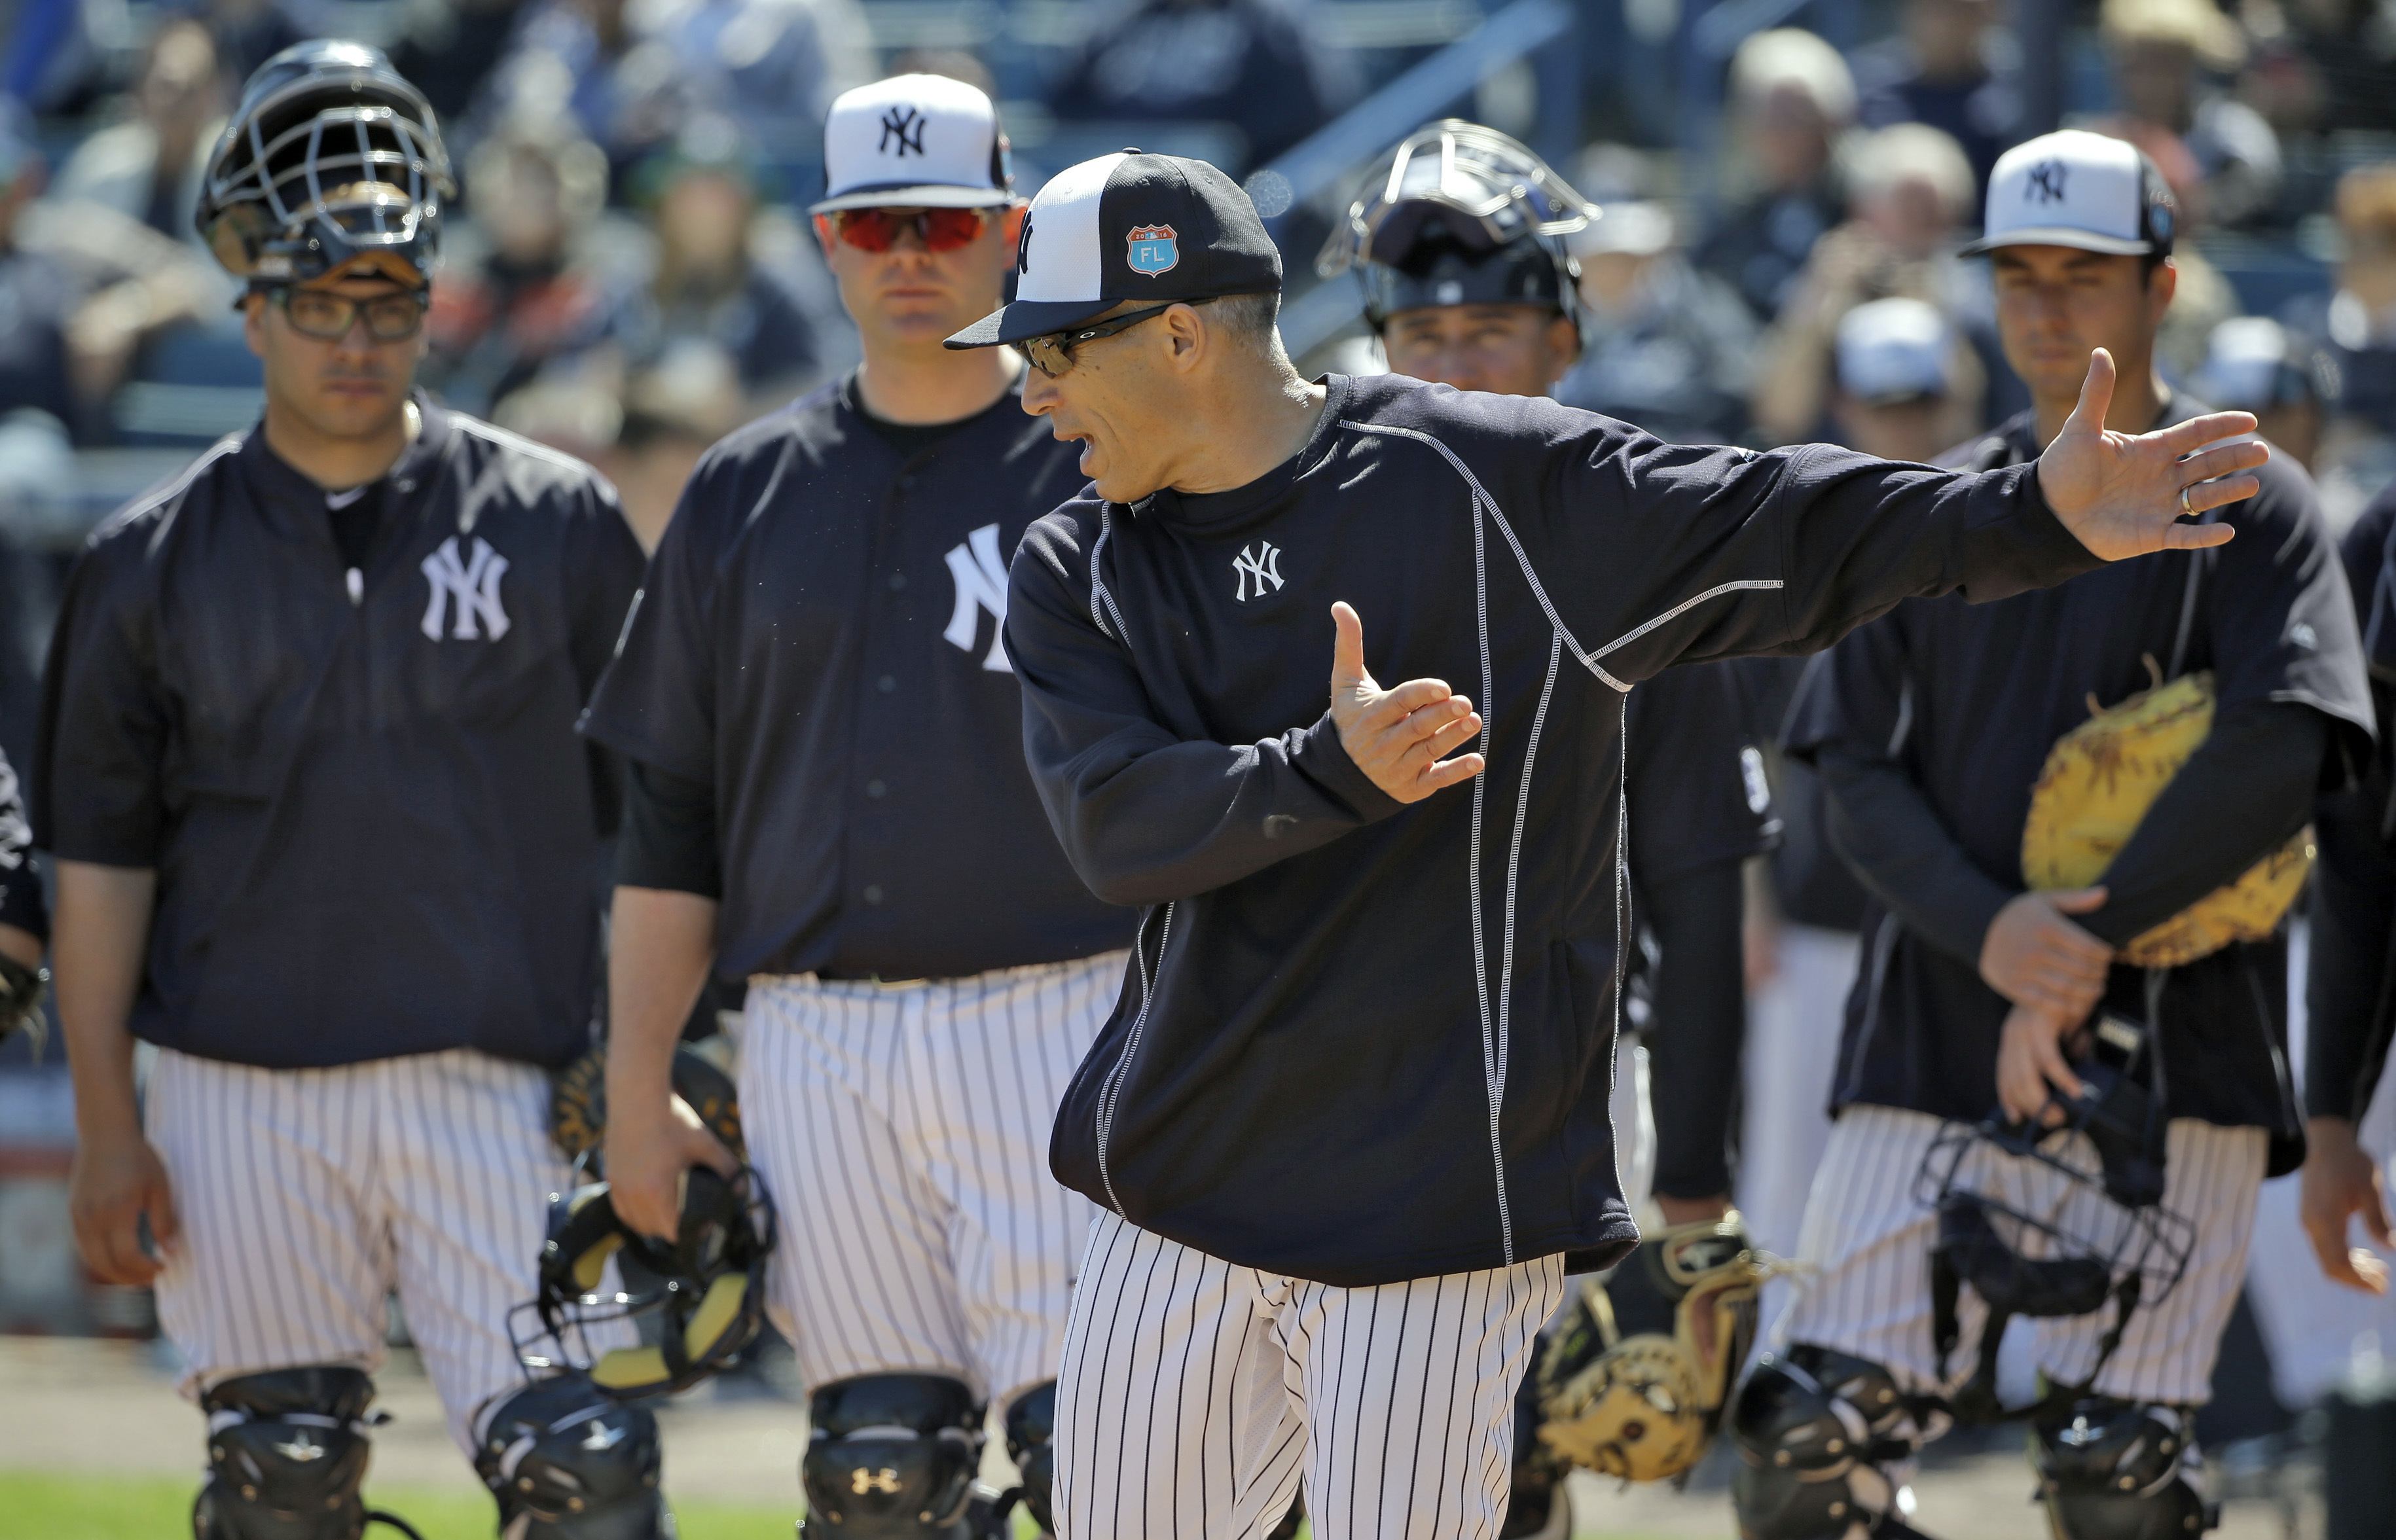 New York Yankees manager Joe Girardi works on fundamentals with catchers during a spring training baseball workout Saturday, Feb. 27, 2016, in Tampa, Fla. (AP Photo/Chris O'Meara)